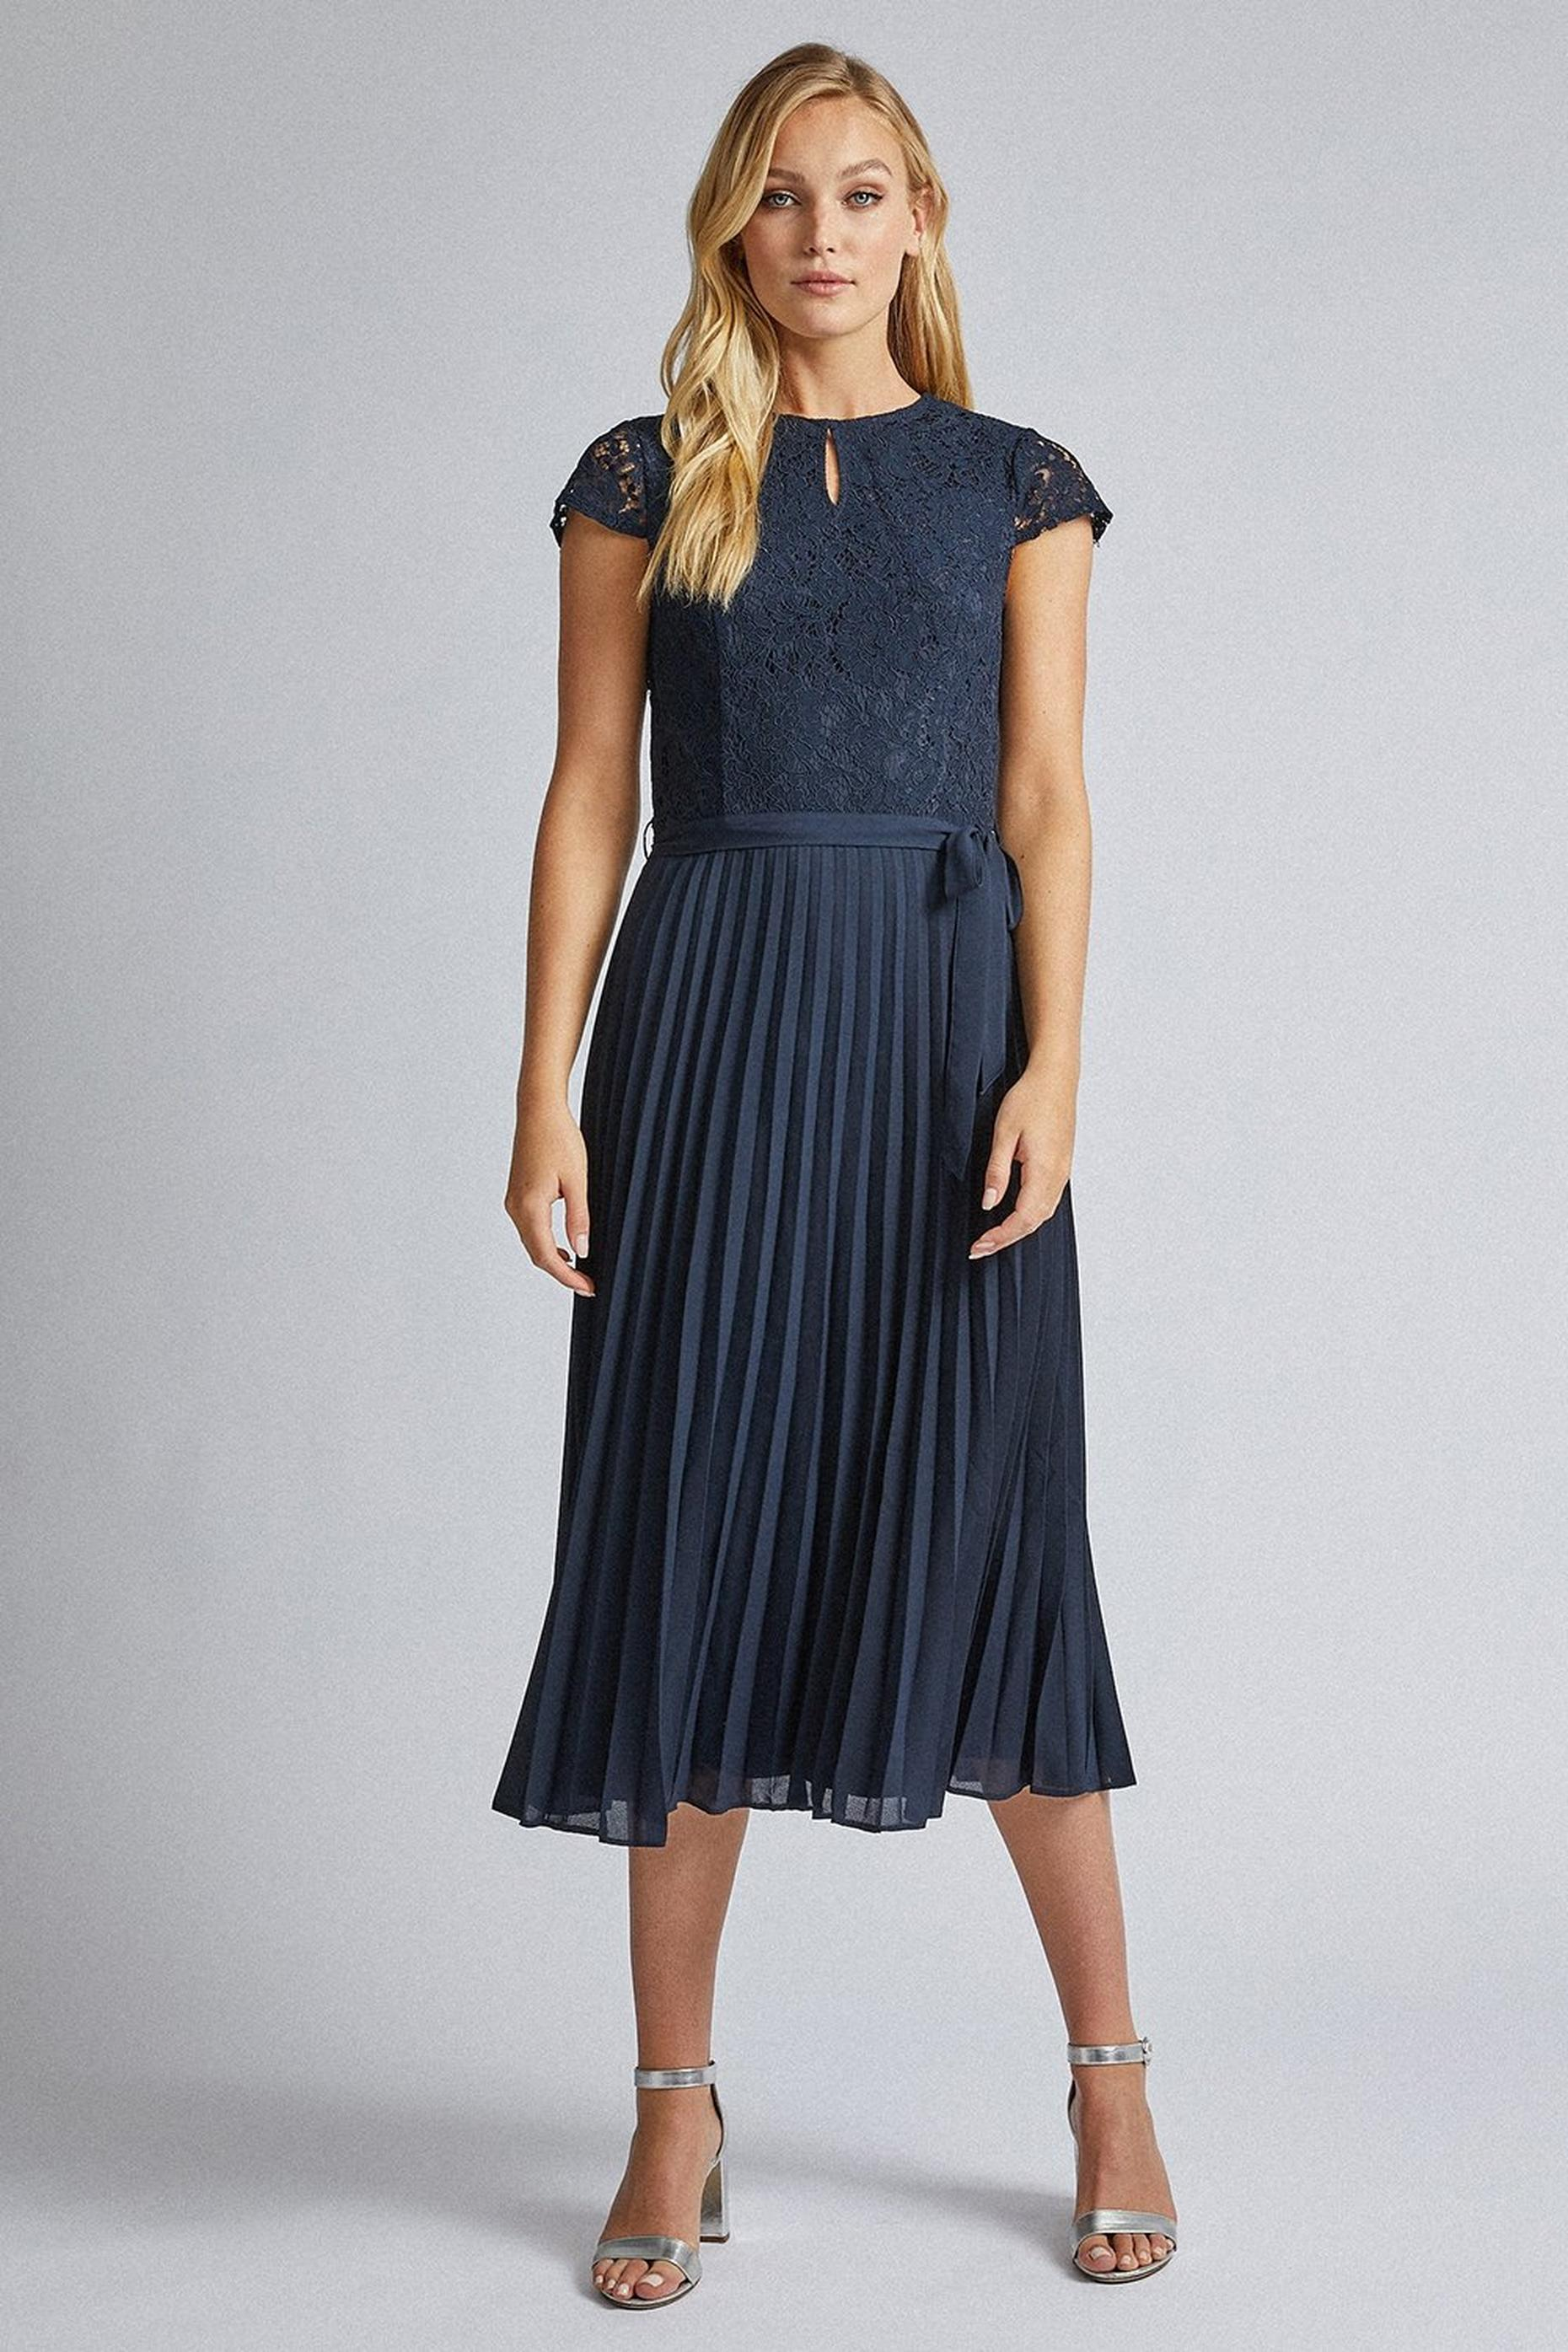 Tall Navy Blue Lace Pleated Dress